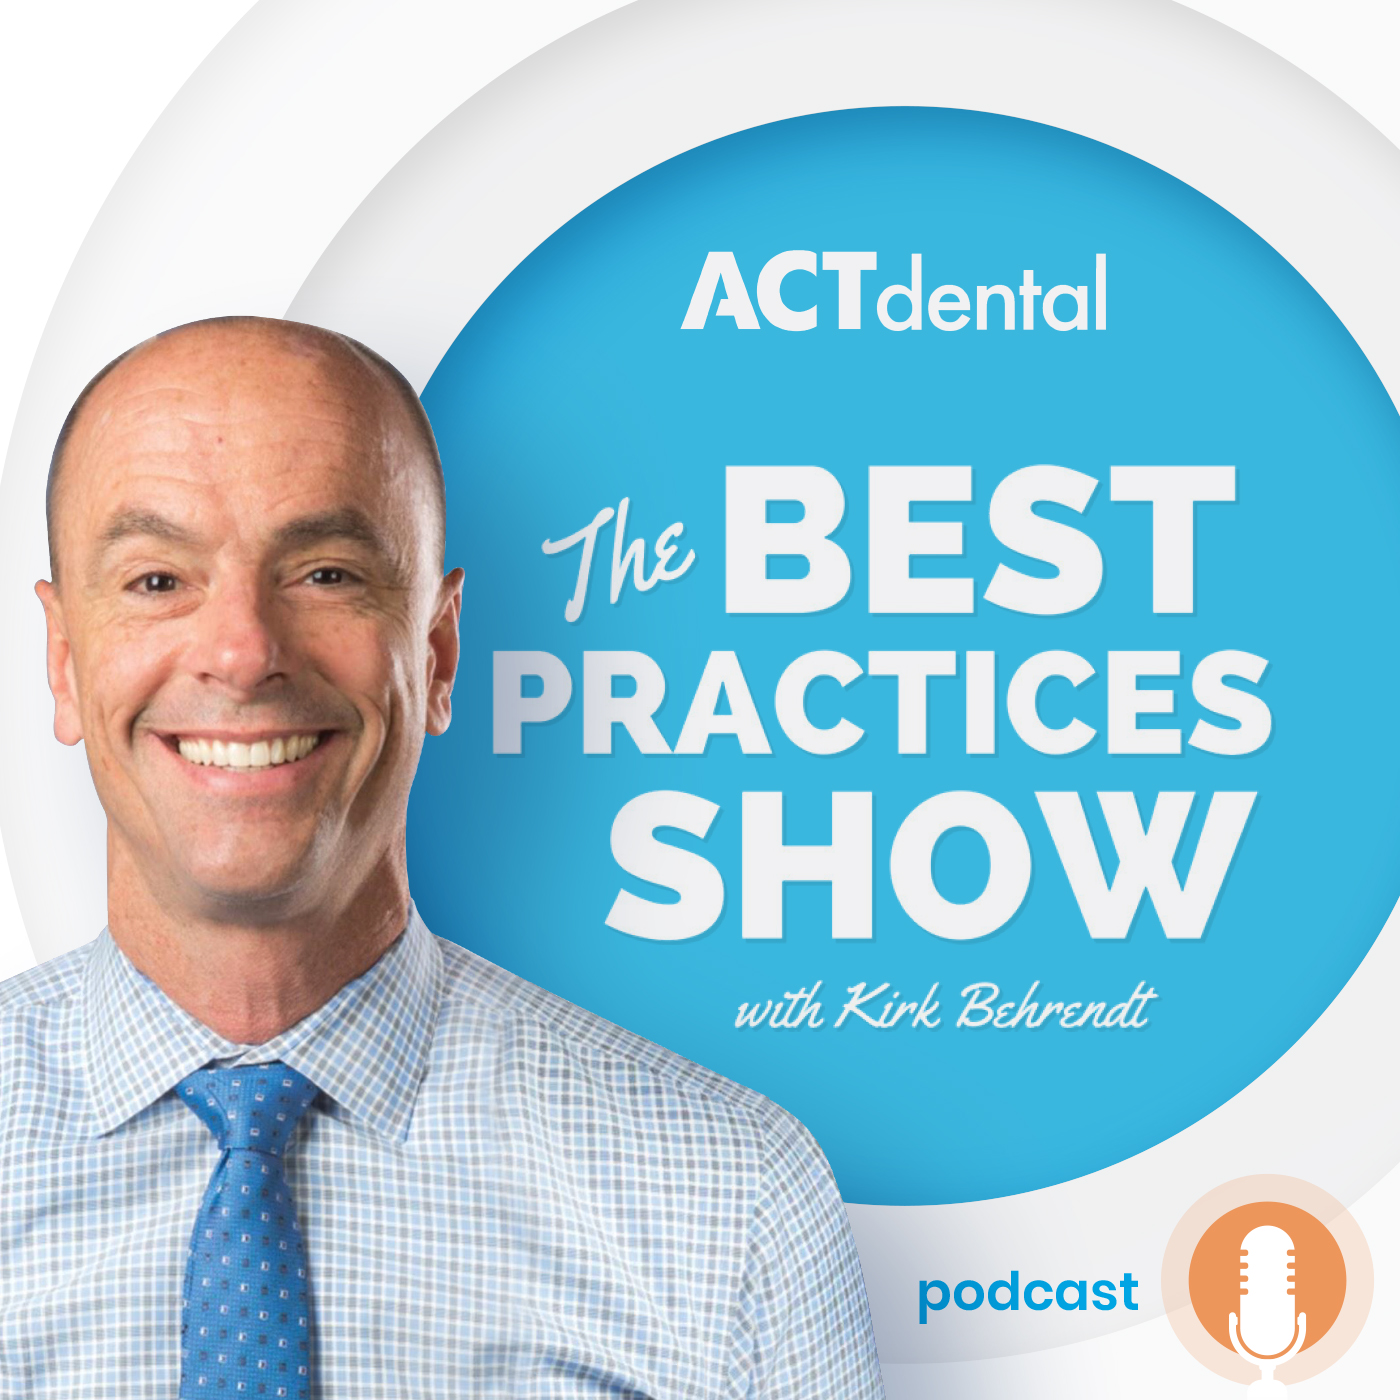 Artwork for podcast The Best Practices Show